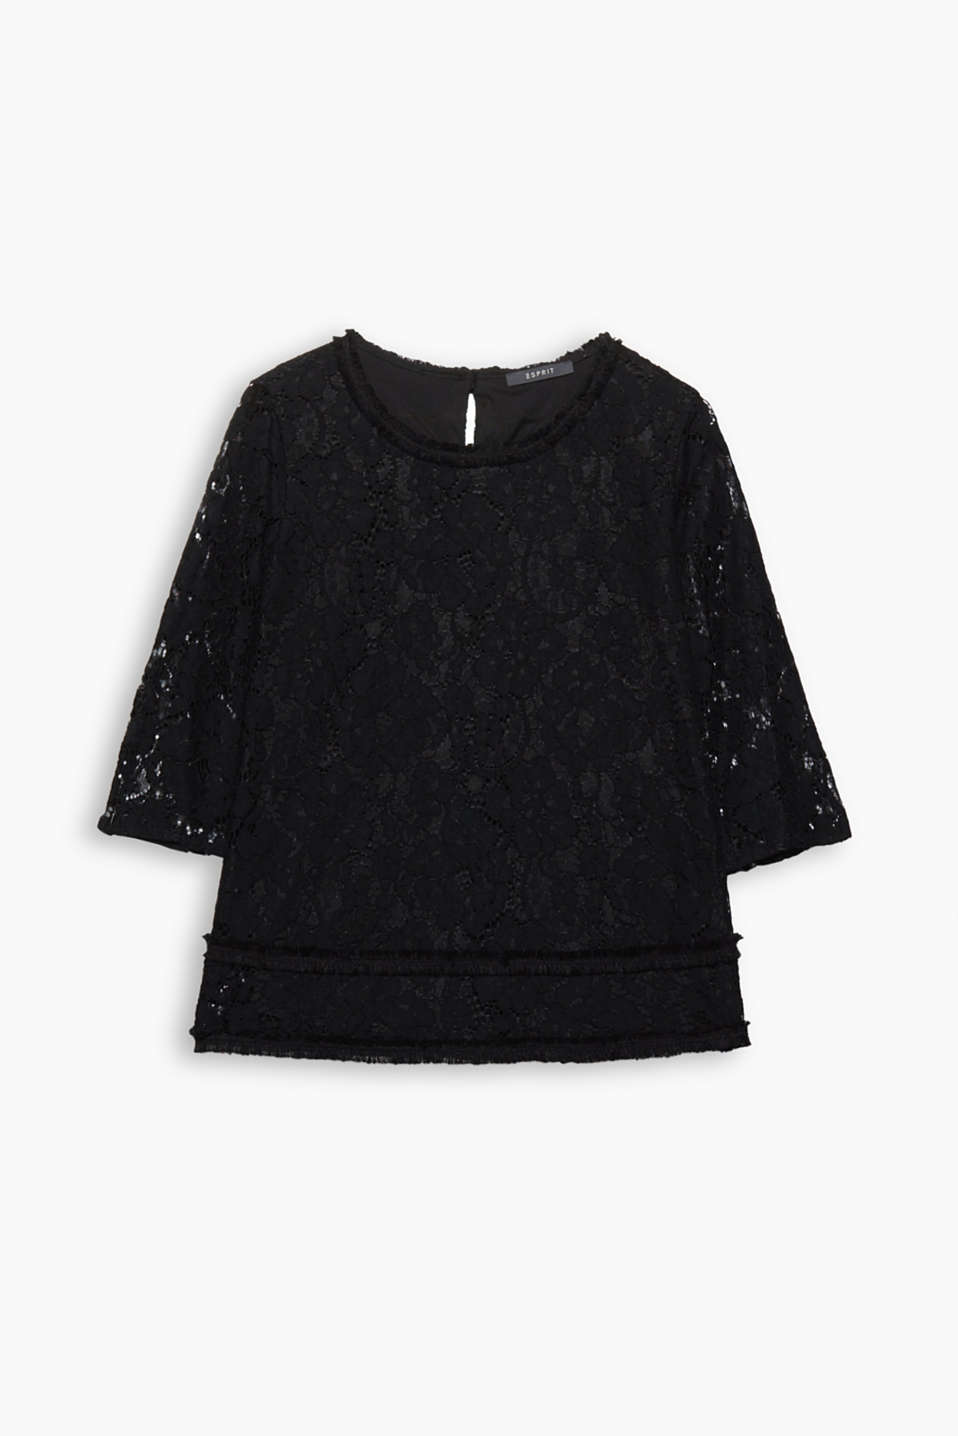 Feminine for festivities: frayed borders add eye-catching style to this lace blouse with three-quarter length sleeves!